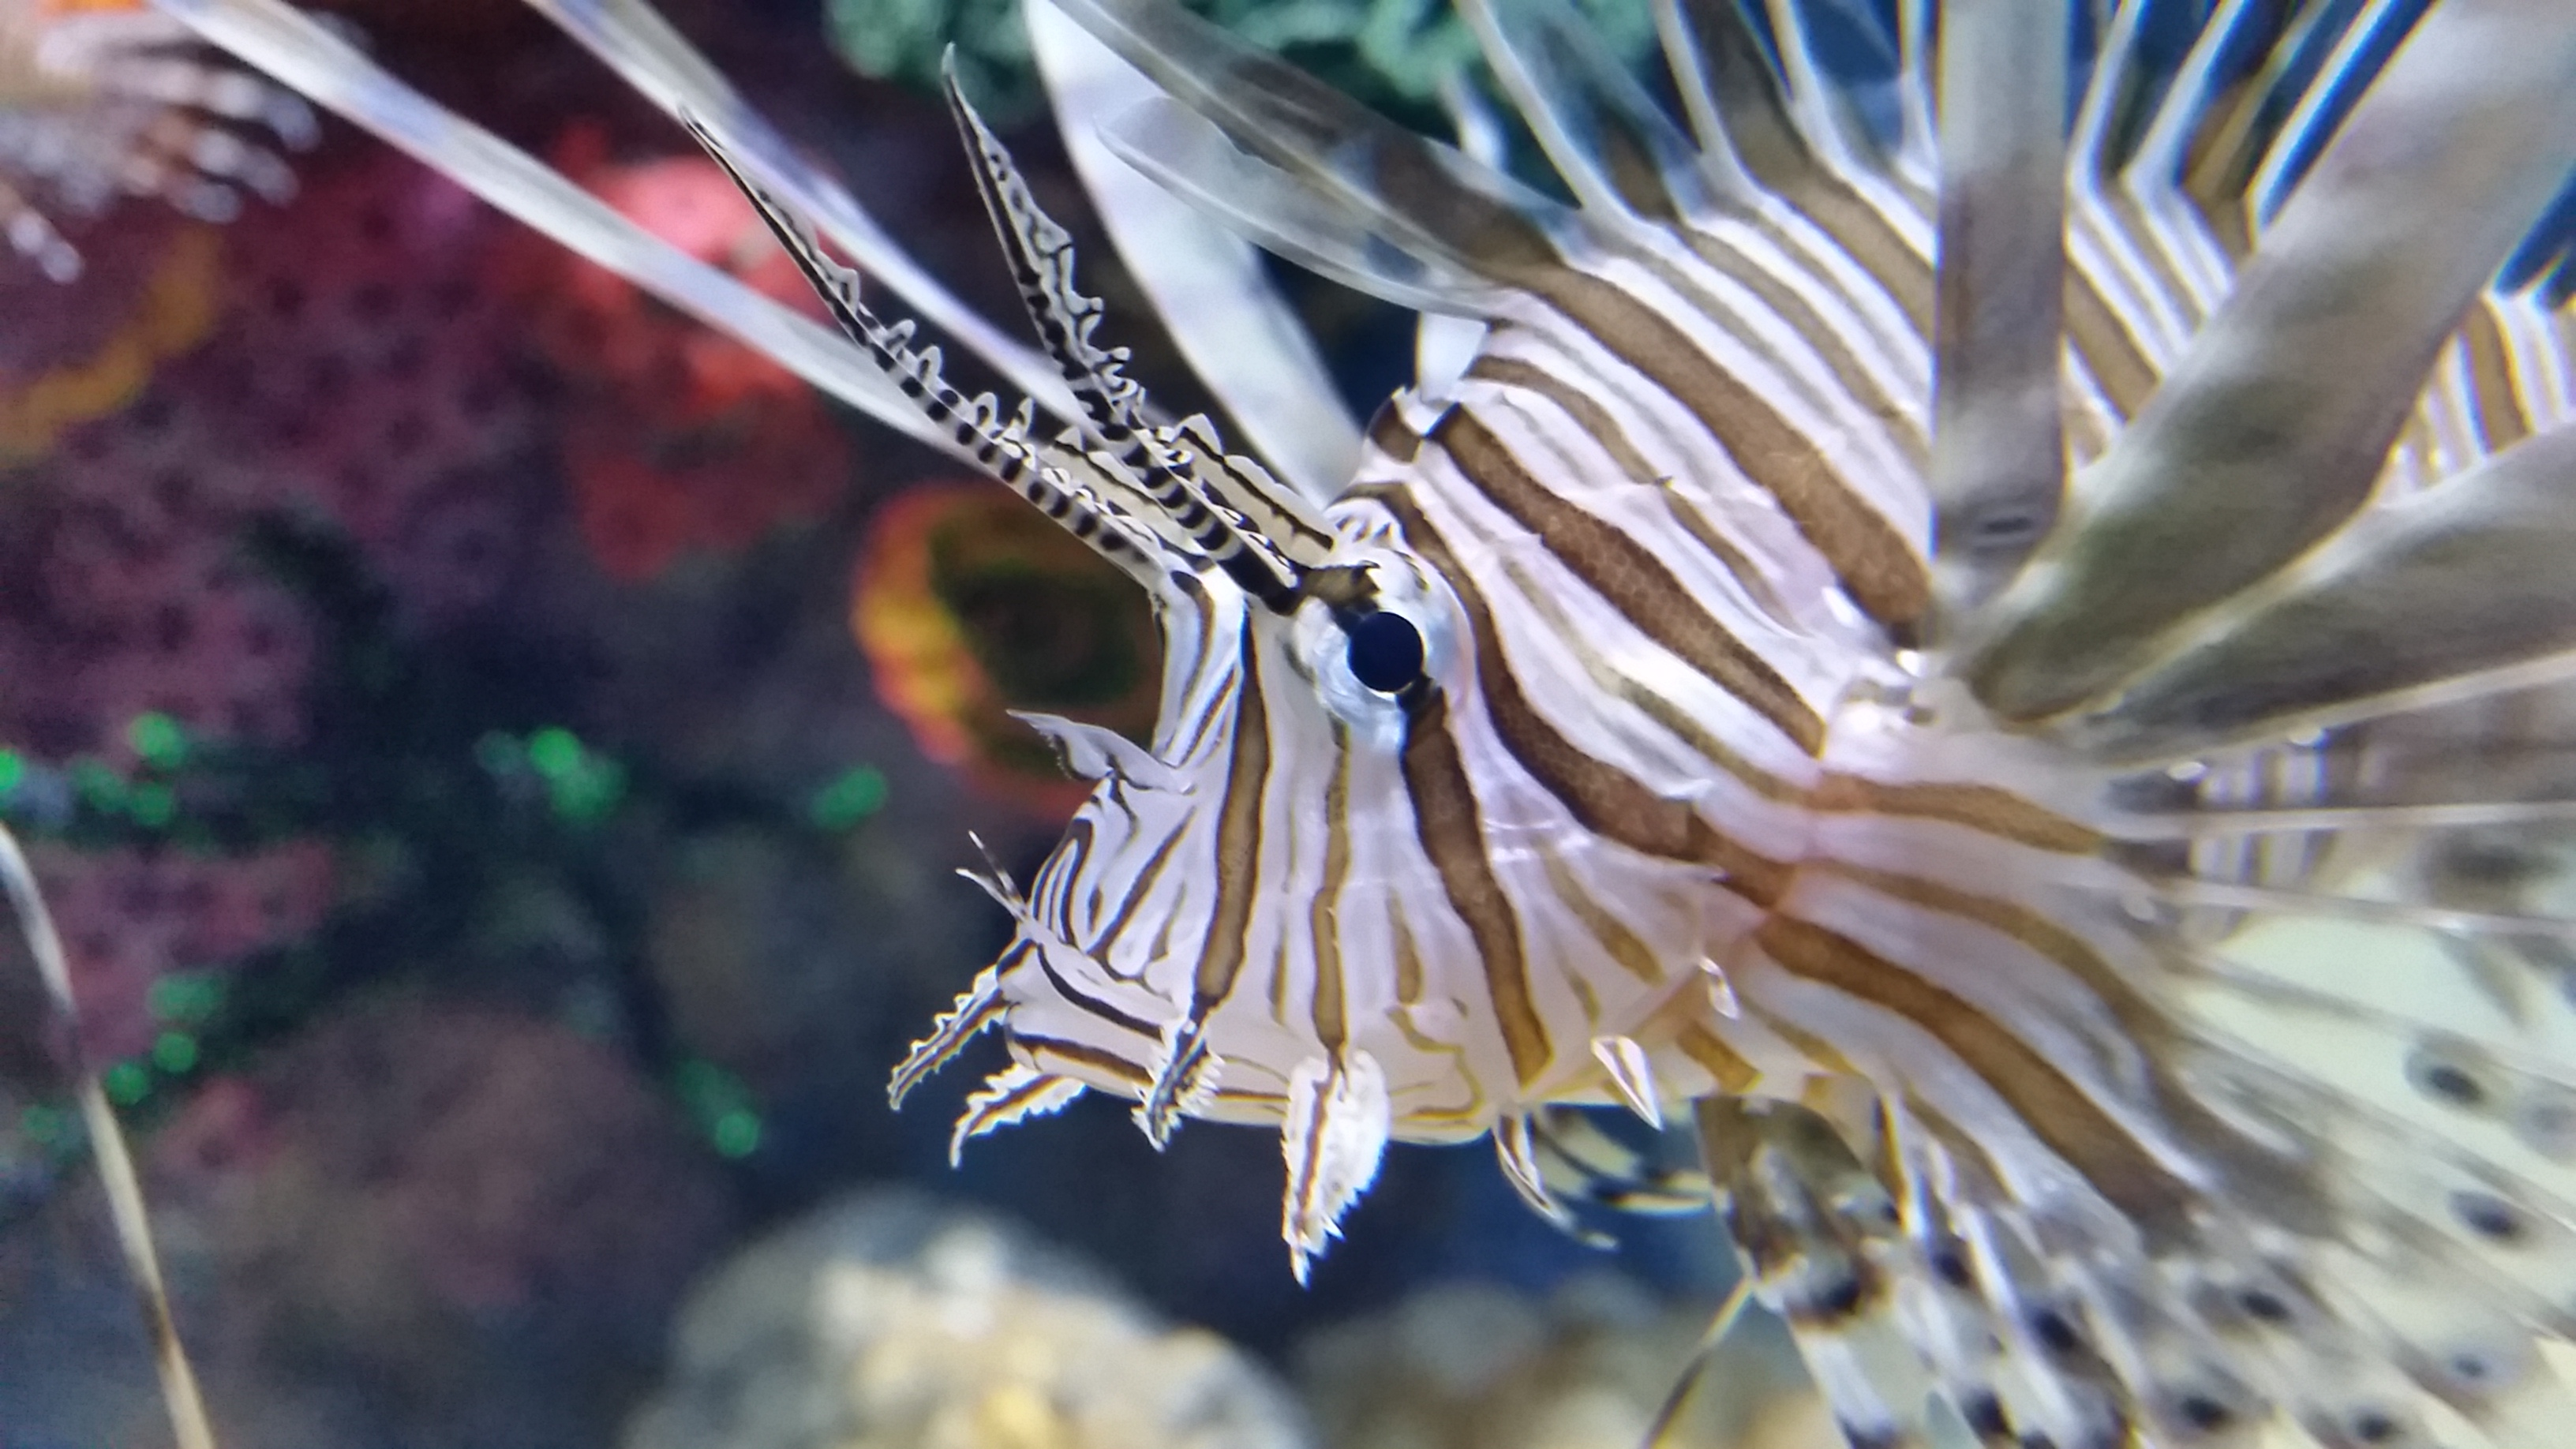 Lionfish Aquarium illuminated with ORSENSO's MARLIN 100-14K-S-10 IP67 LED